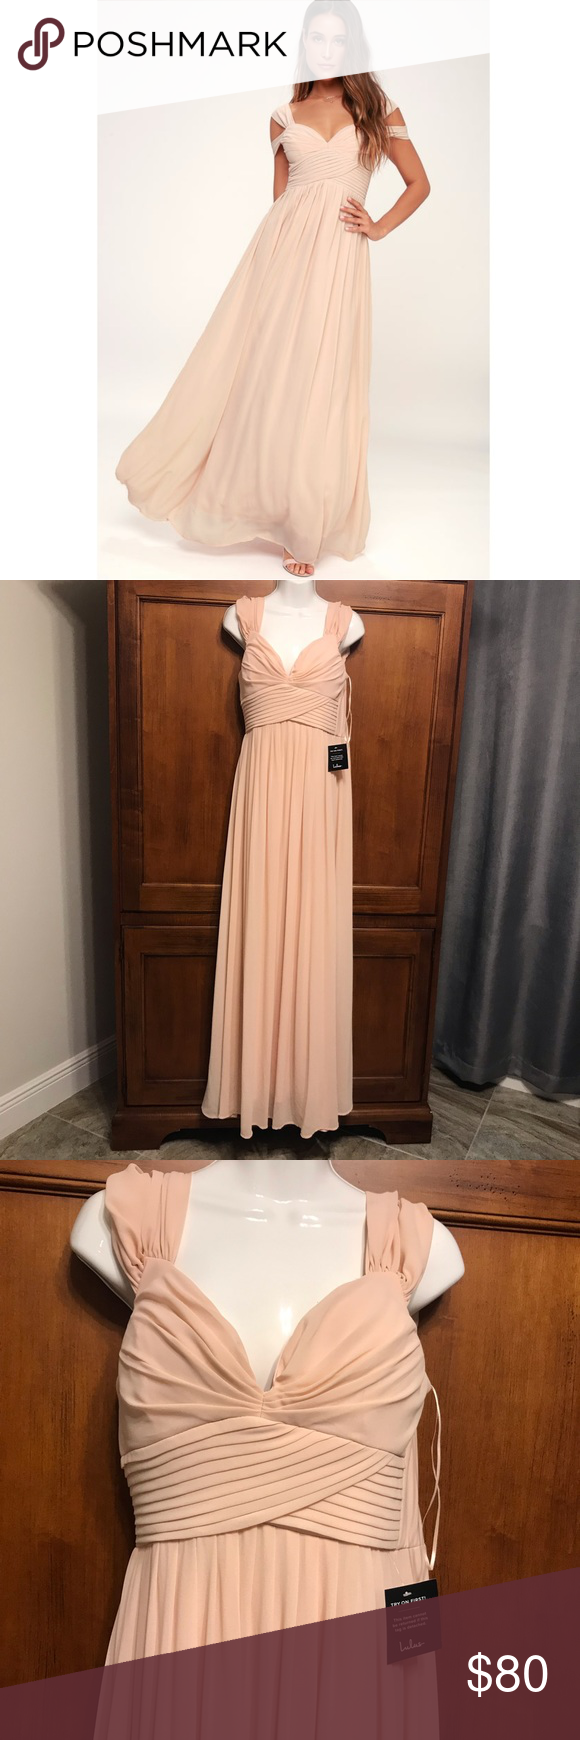 7396a4526421 Lulu's Blush Pink Prom Bridesmaid Gown M You'll be the hit of any dance